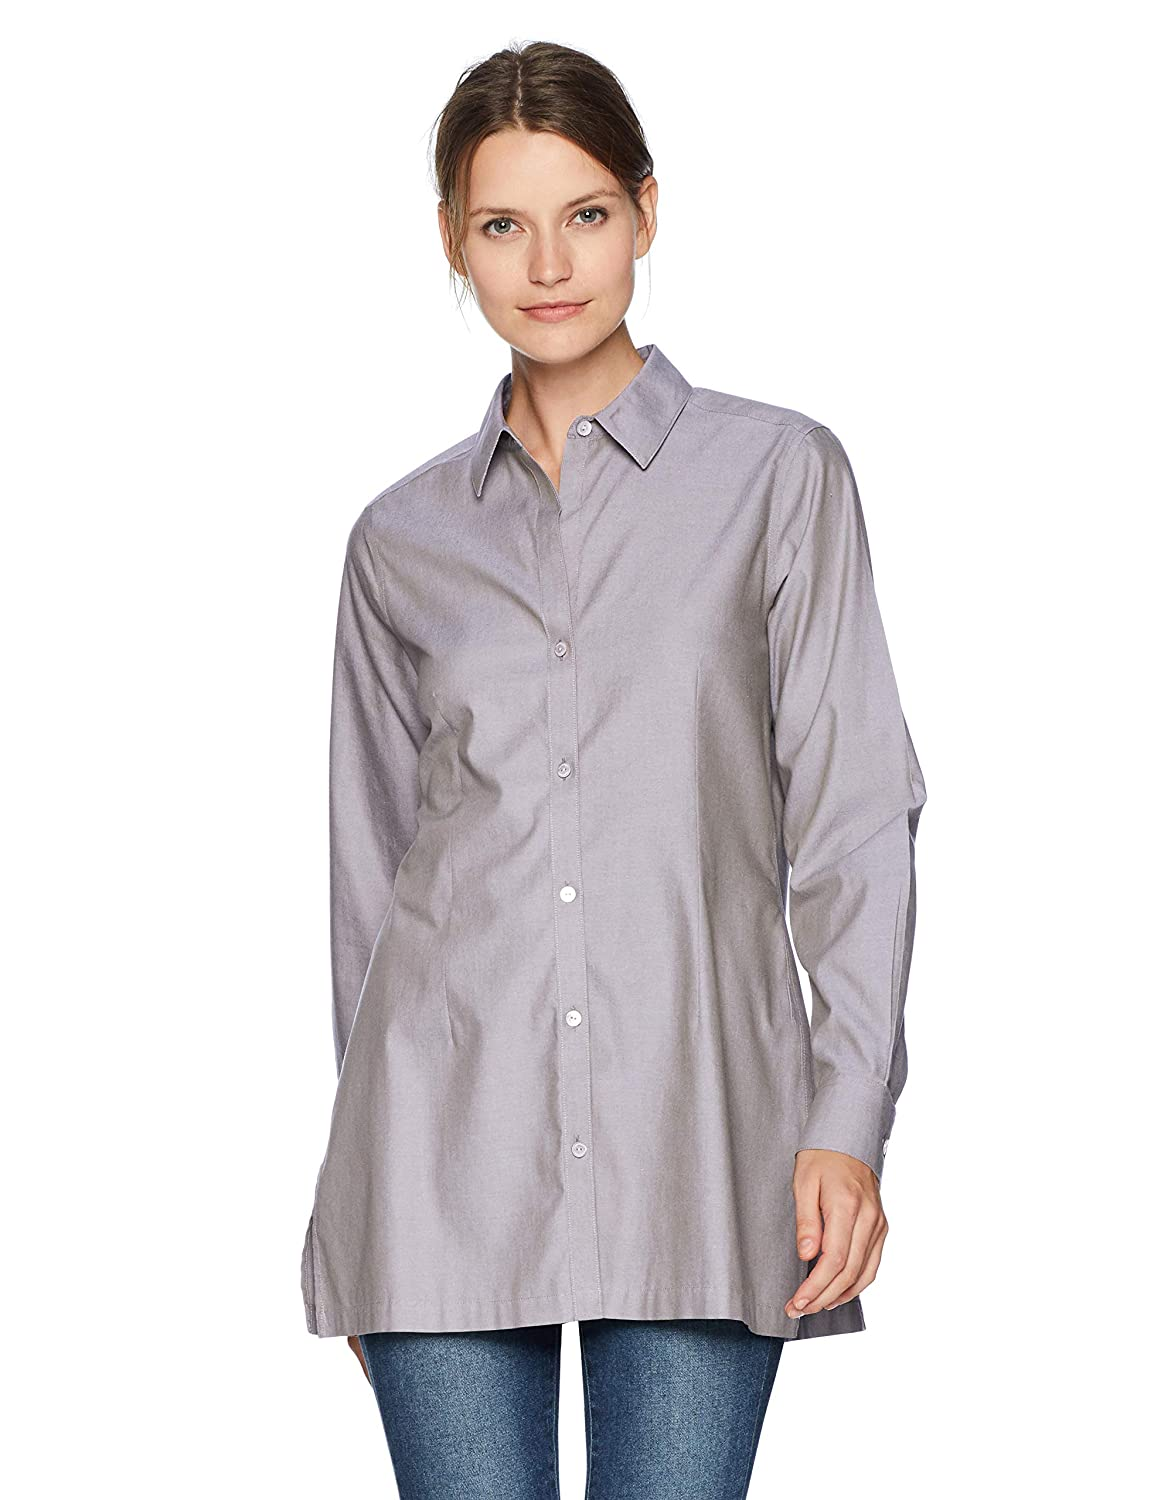 Sterling Foxcroft Womens Harlow Essential Non Iron Tunic Tunic Shirt